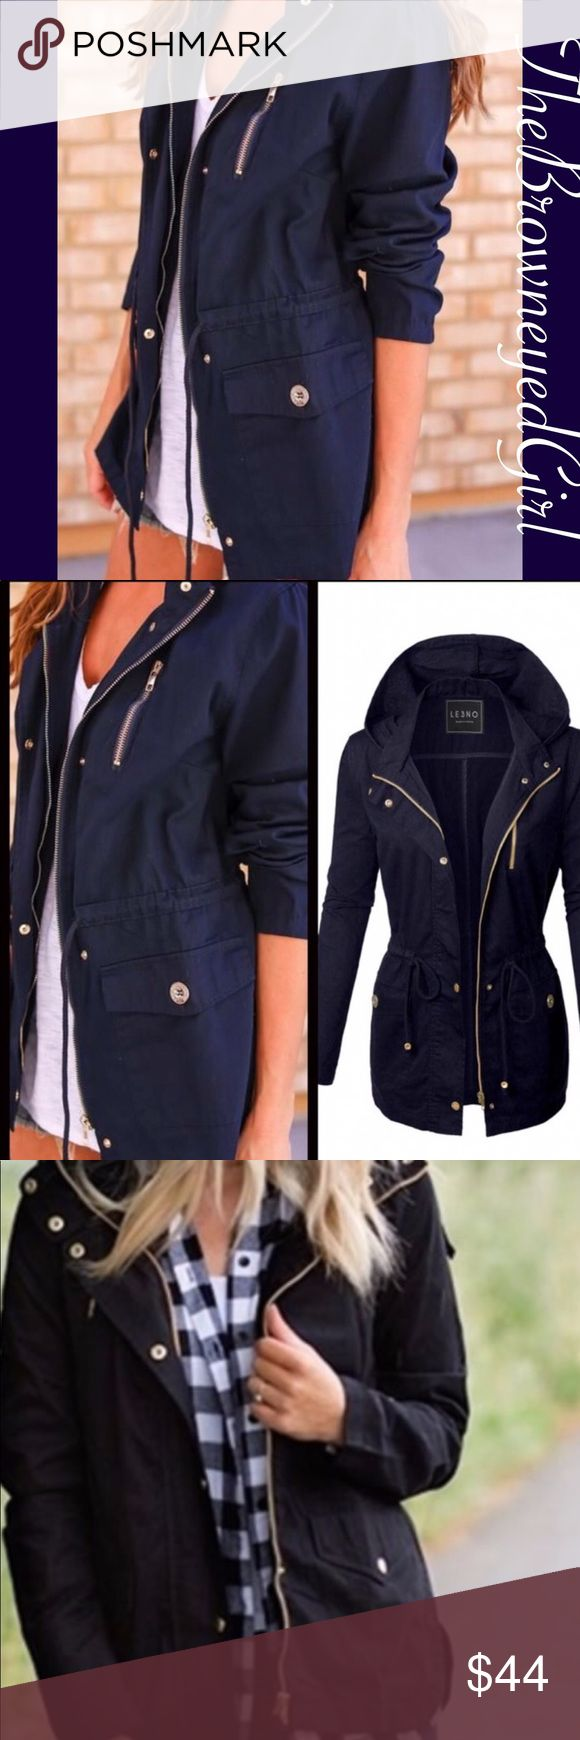 """Navy Women's Roark utility jacket It's all about that cargo Jacket One of the hottest trend this Fall The Anorak Safari Jacket  Navy Utility Jacket Draw string tie at waist pockets on each side with  decorative zipper on chest Hooded with Buttons,  zips up the front. Buttons and zippers are dull gold  Small B 34"""" L26 Medium B36"""" L26 Large B36"""" L26 Jackets & Coats Utility Jackets"""